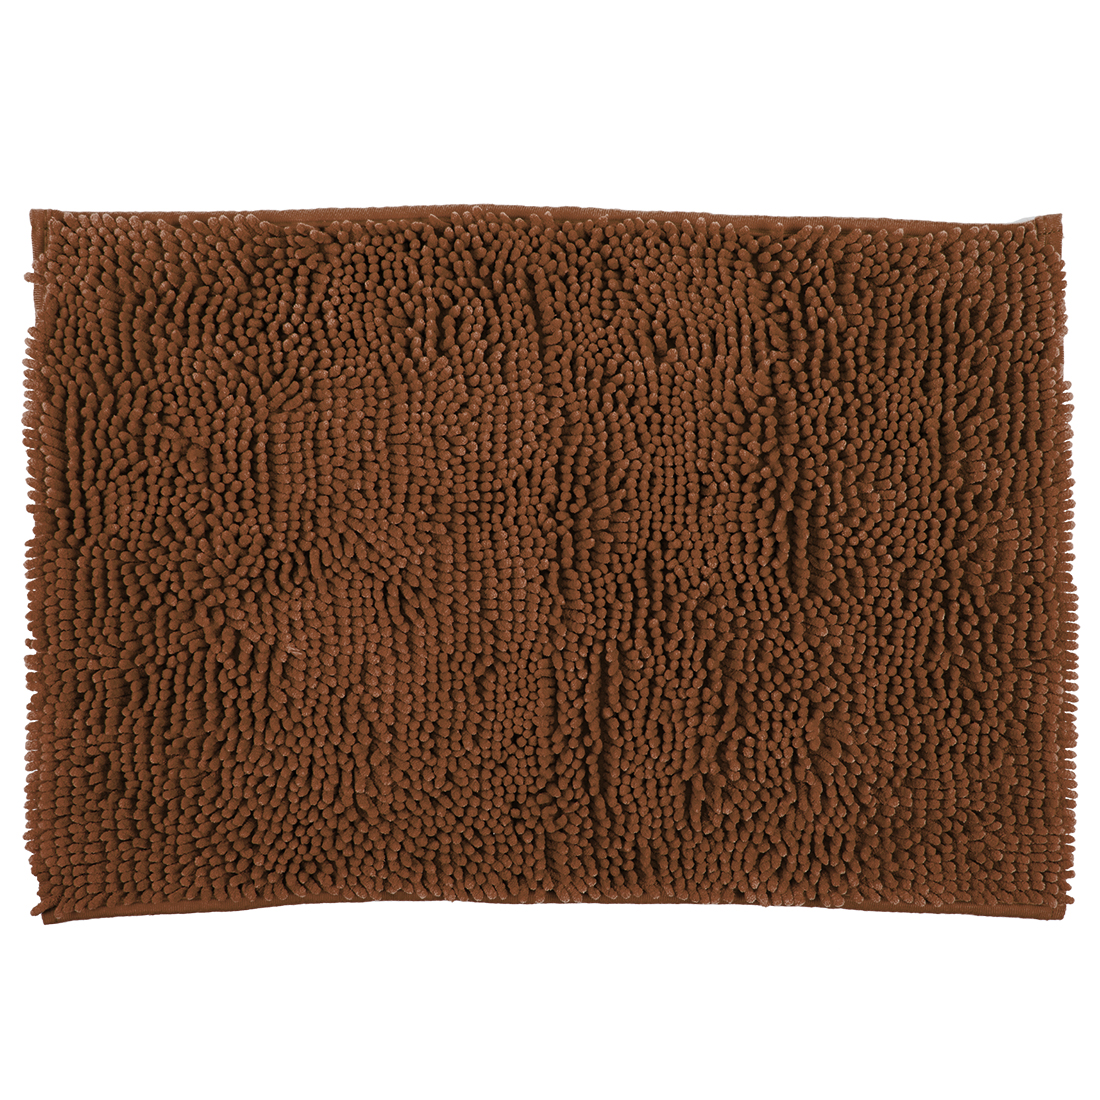 Bath Mat Nora Chenille Brown Chenille Bath Mats in Brown Colour by Living Essence